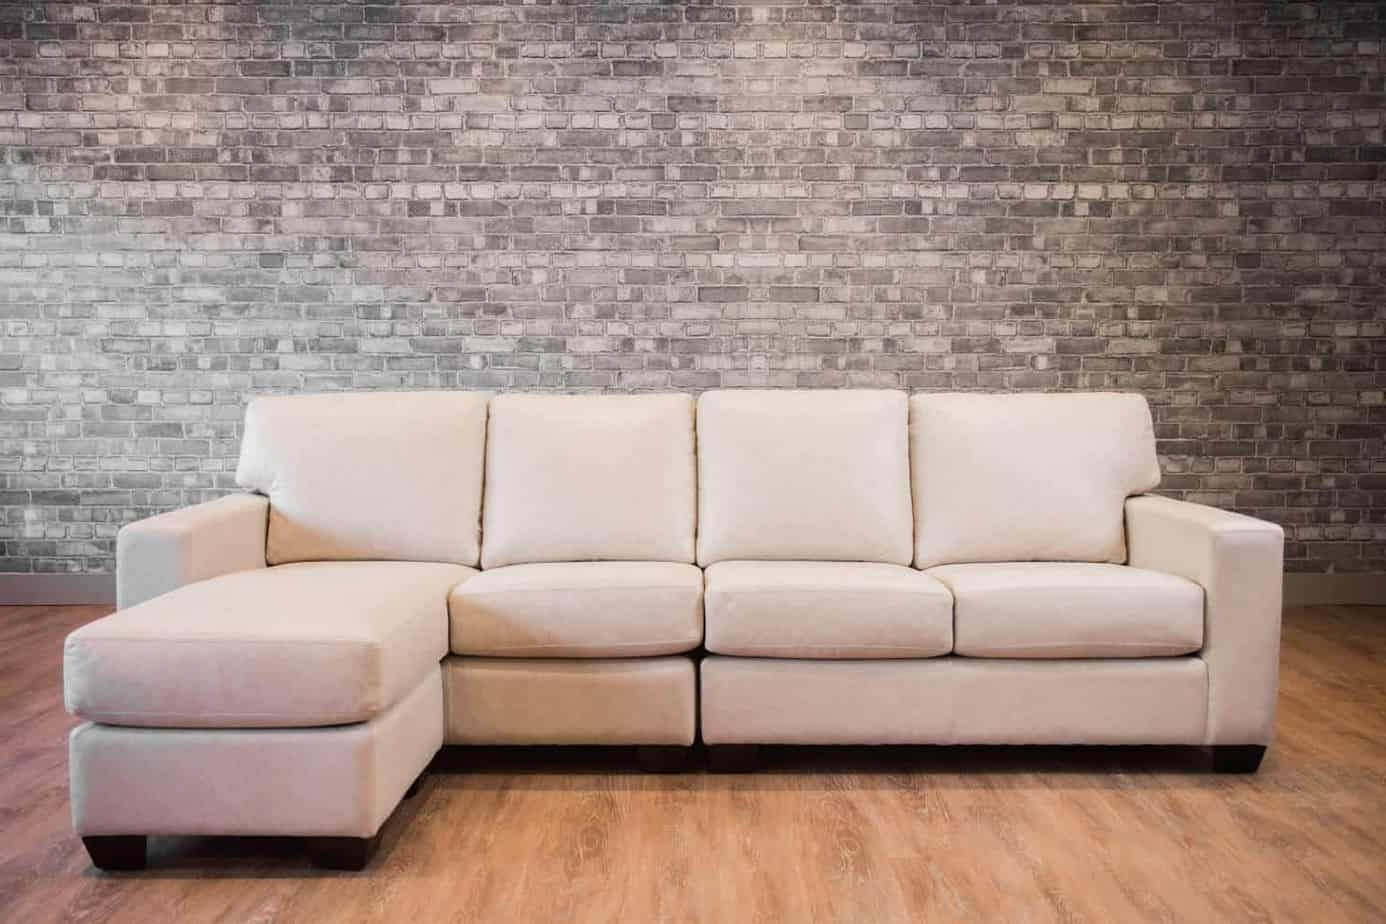 The Mesa Four Seat Leather Sectional Lhf | Canada's Boss Leather With Mesa Foam 2 Piece Sectionals (Image 22 of 25)